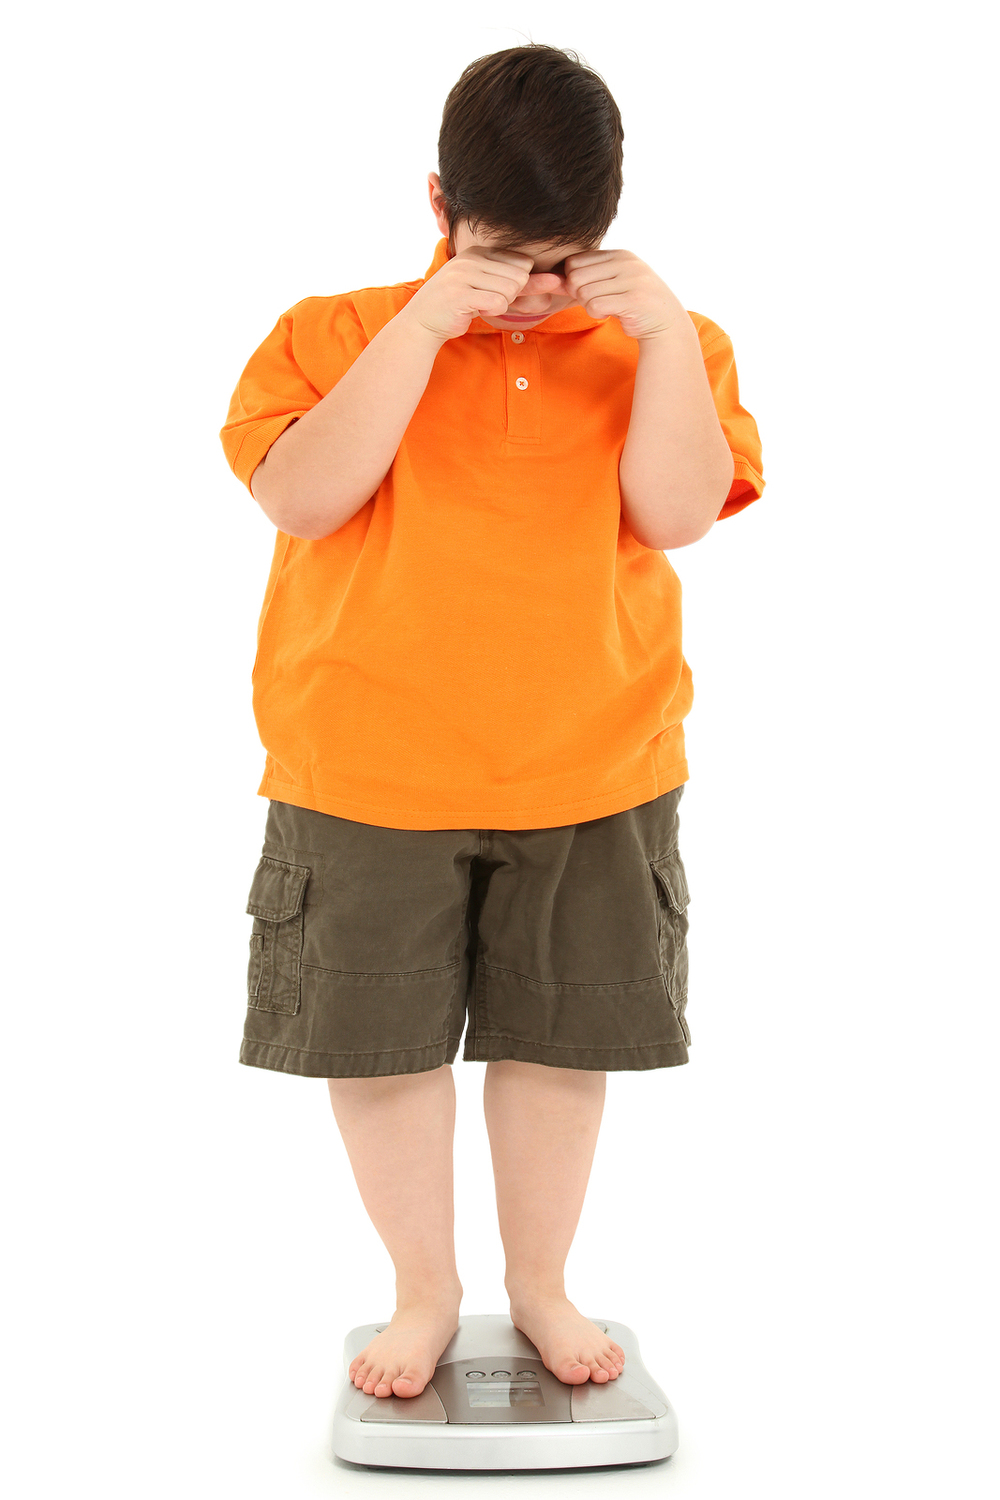 bigstock-Fat-Child-On-Sc-21276017.jpg